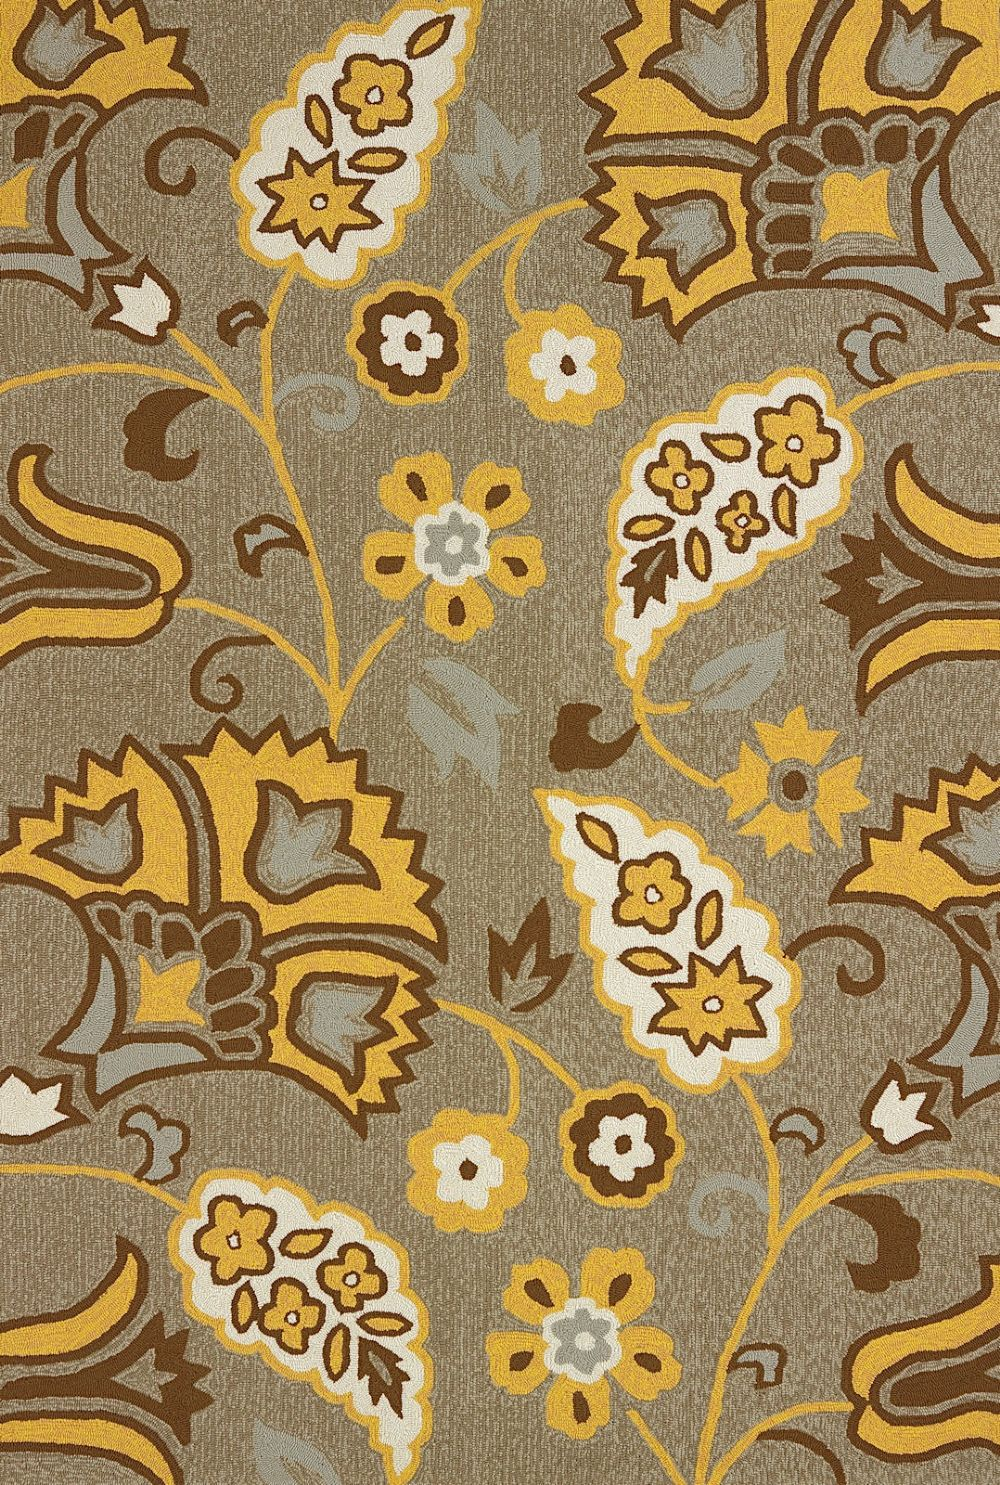 united weavers atrium country & floral area rug collection